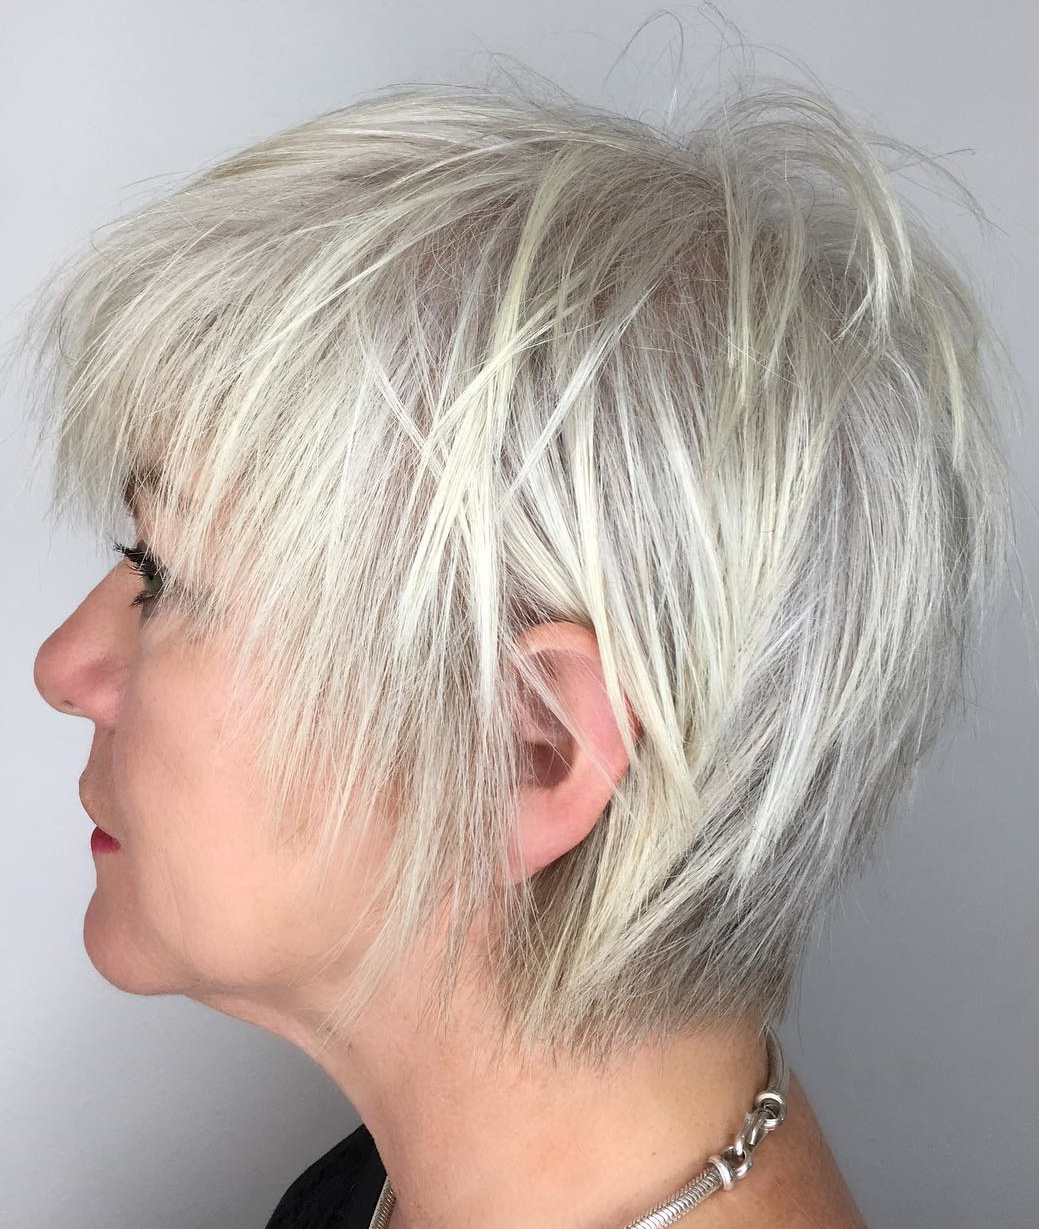 60 Trendiest Hairstyles And Haircuts For Women Over 50 In 2020 With Most Current Disconnected Pixie Haircuts For Fine Hair (View 11 of 20)